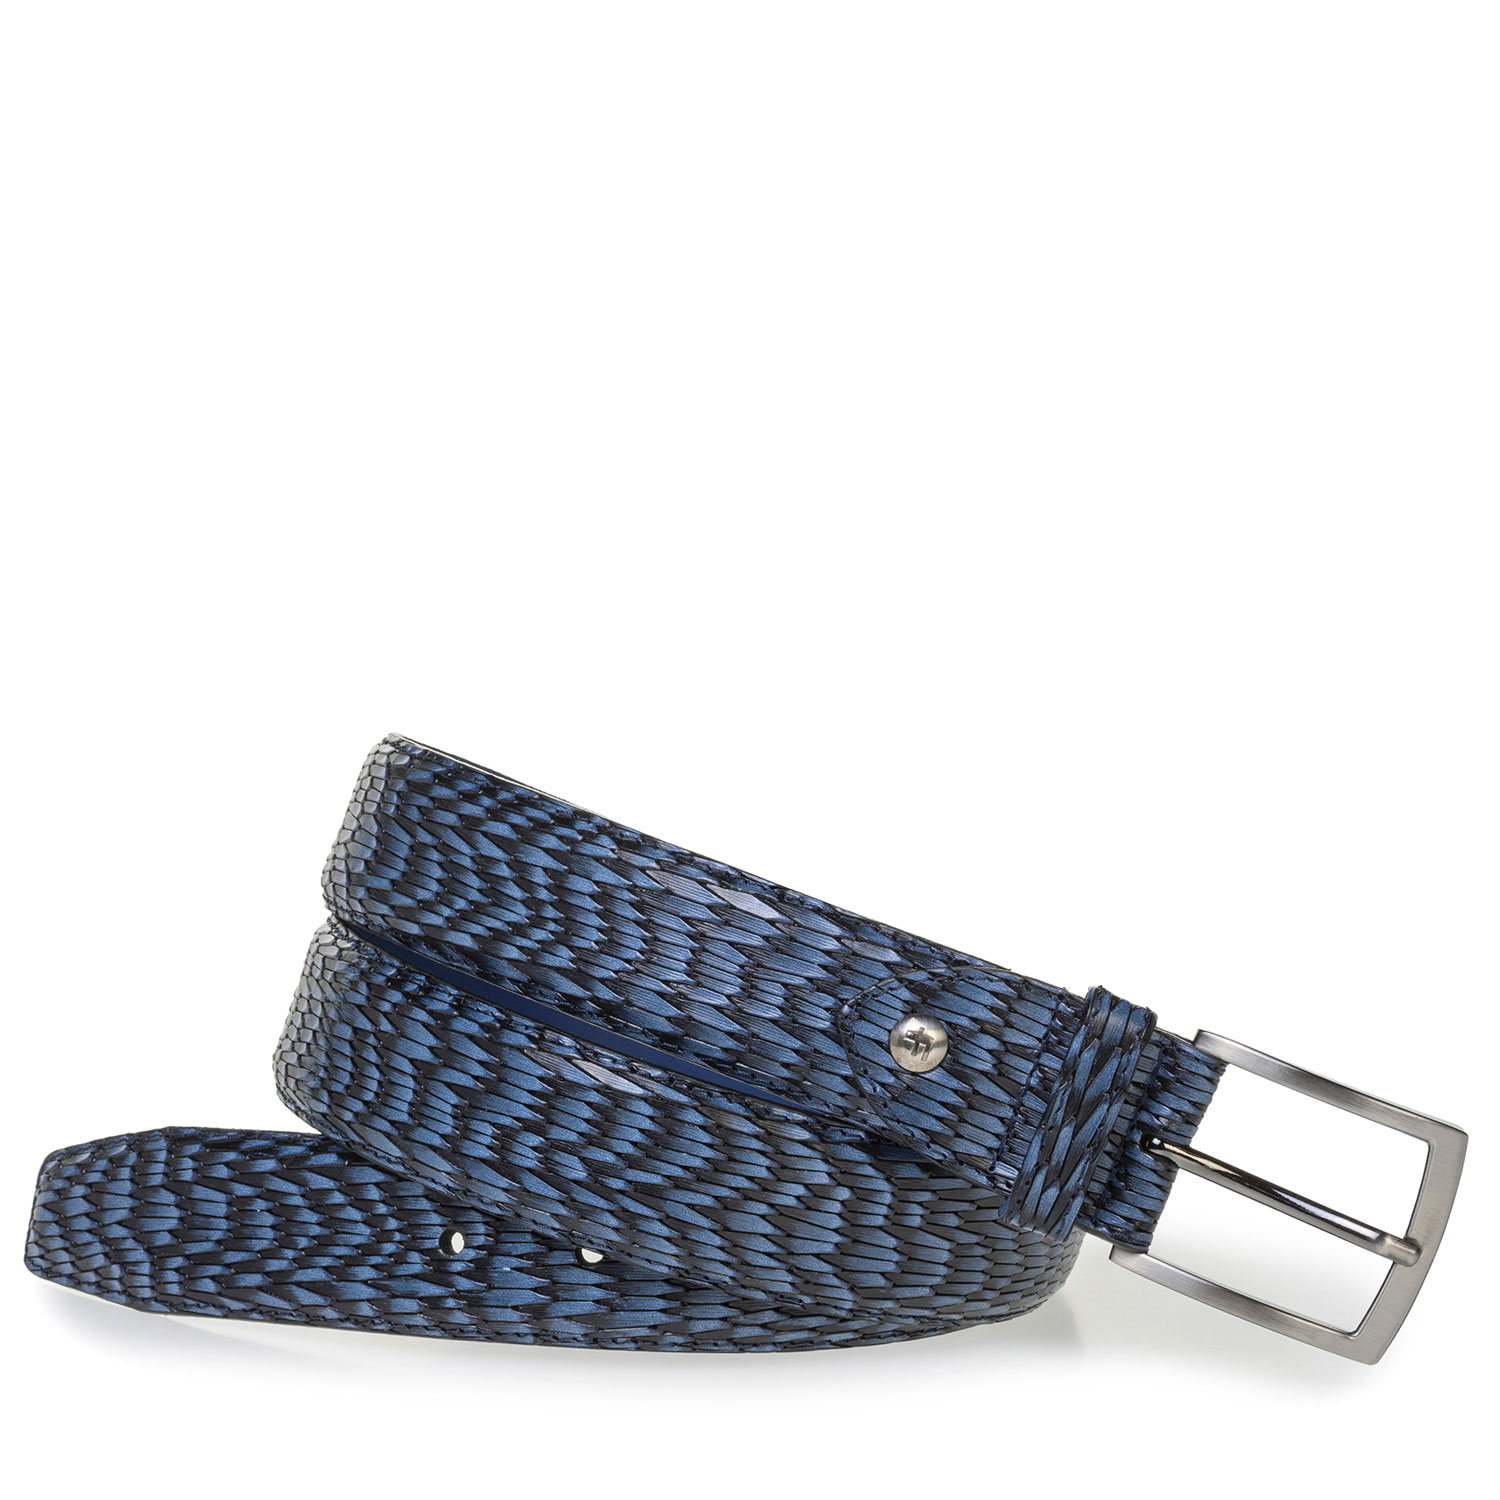 75200/72 - Blue leather belt with print